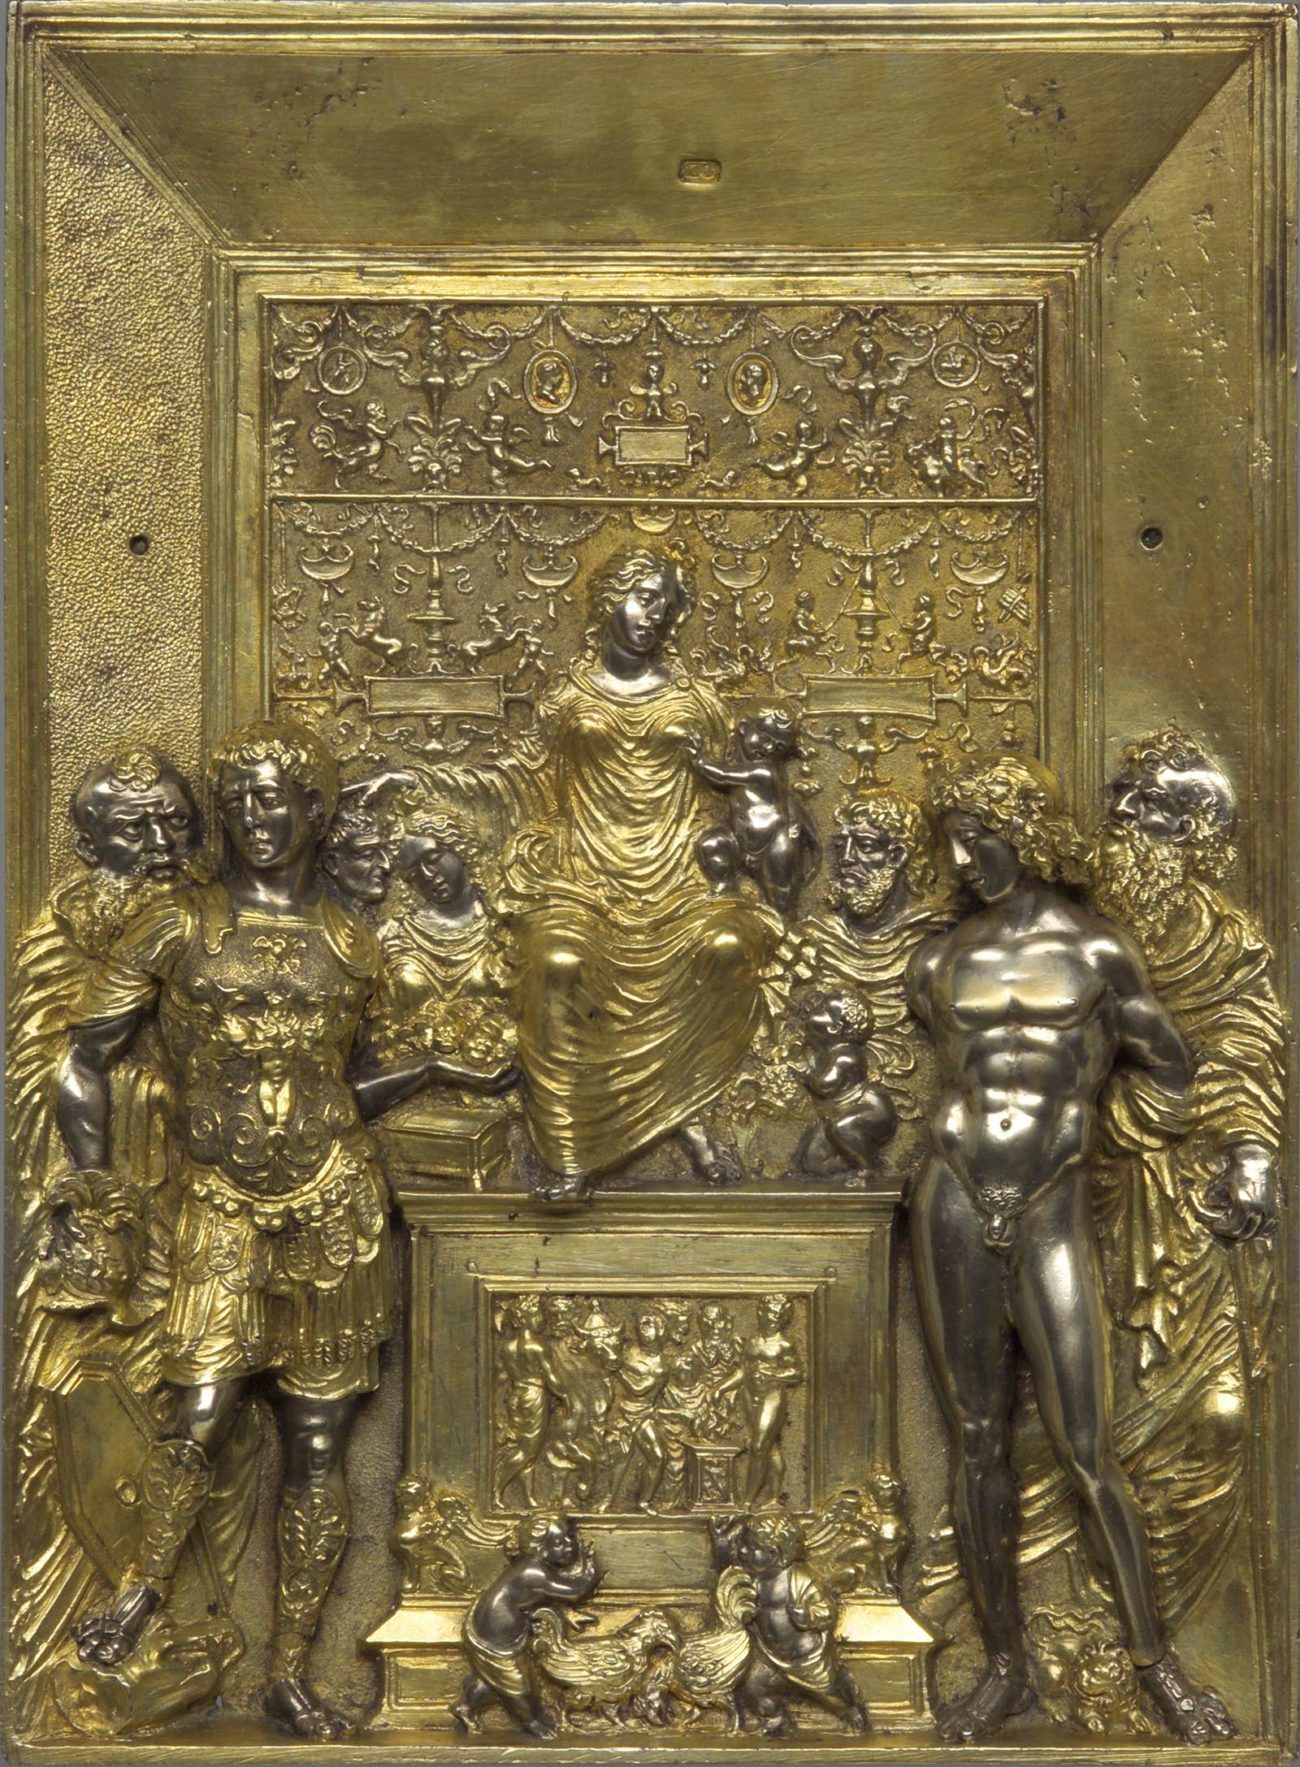 A golden colored relief sculpture featuring the Virgin and Child. In the foreground, Saint Sebastian is nude.